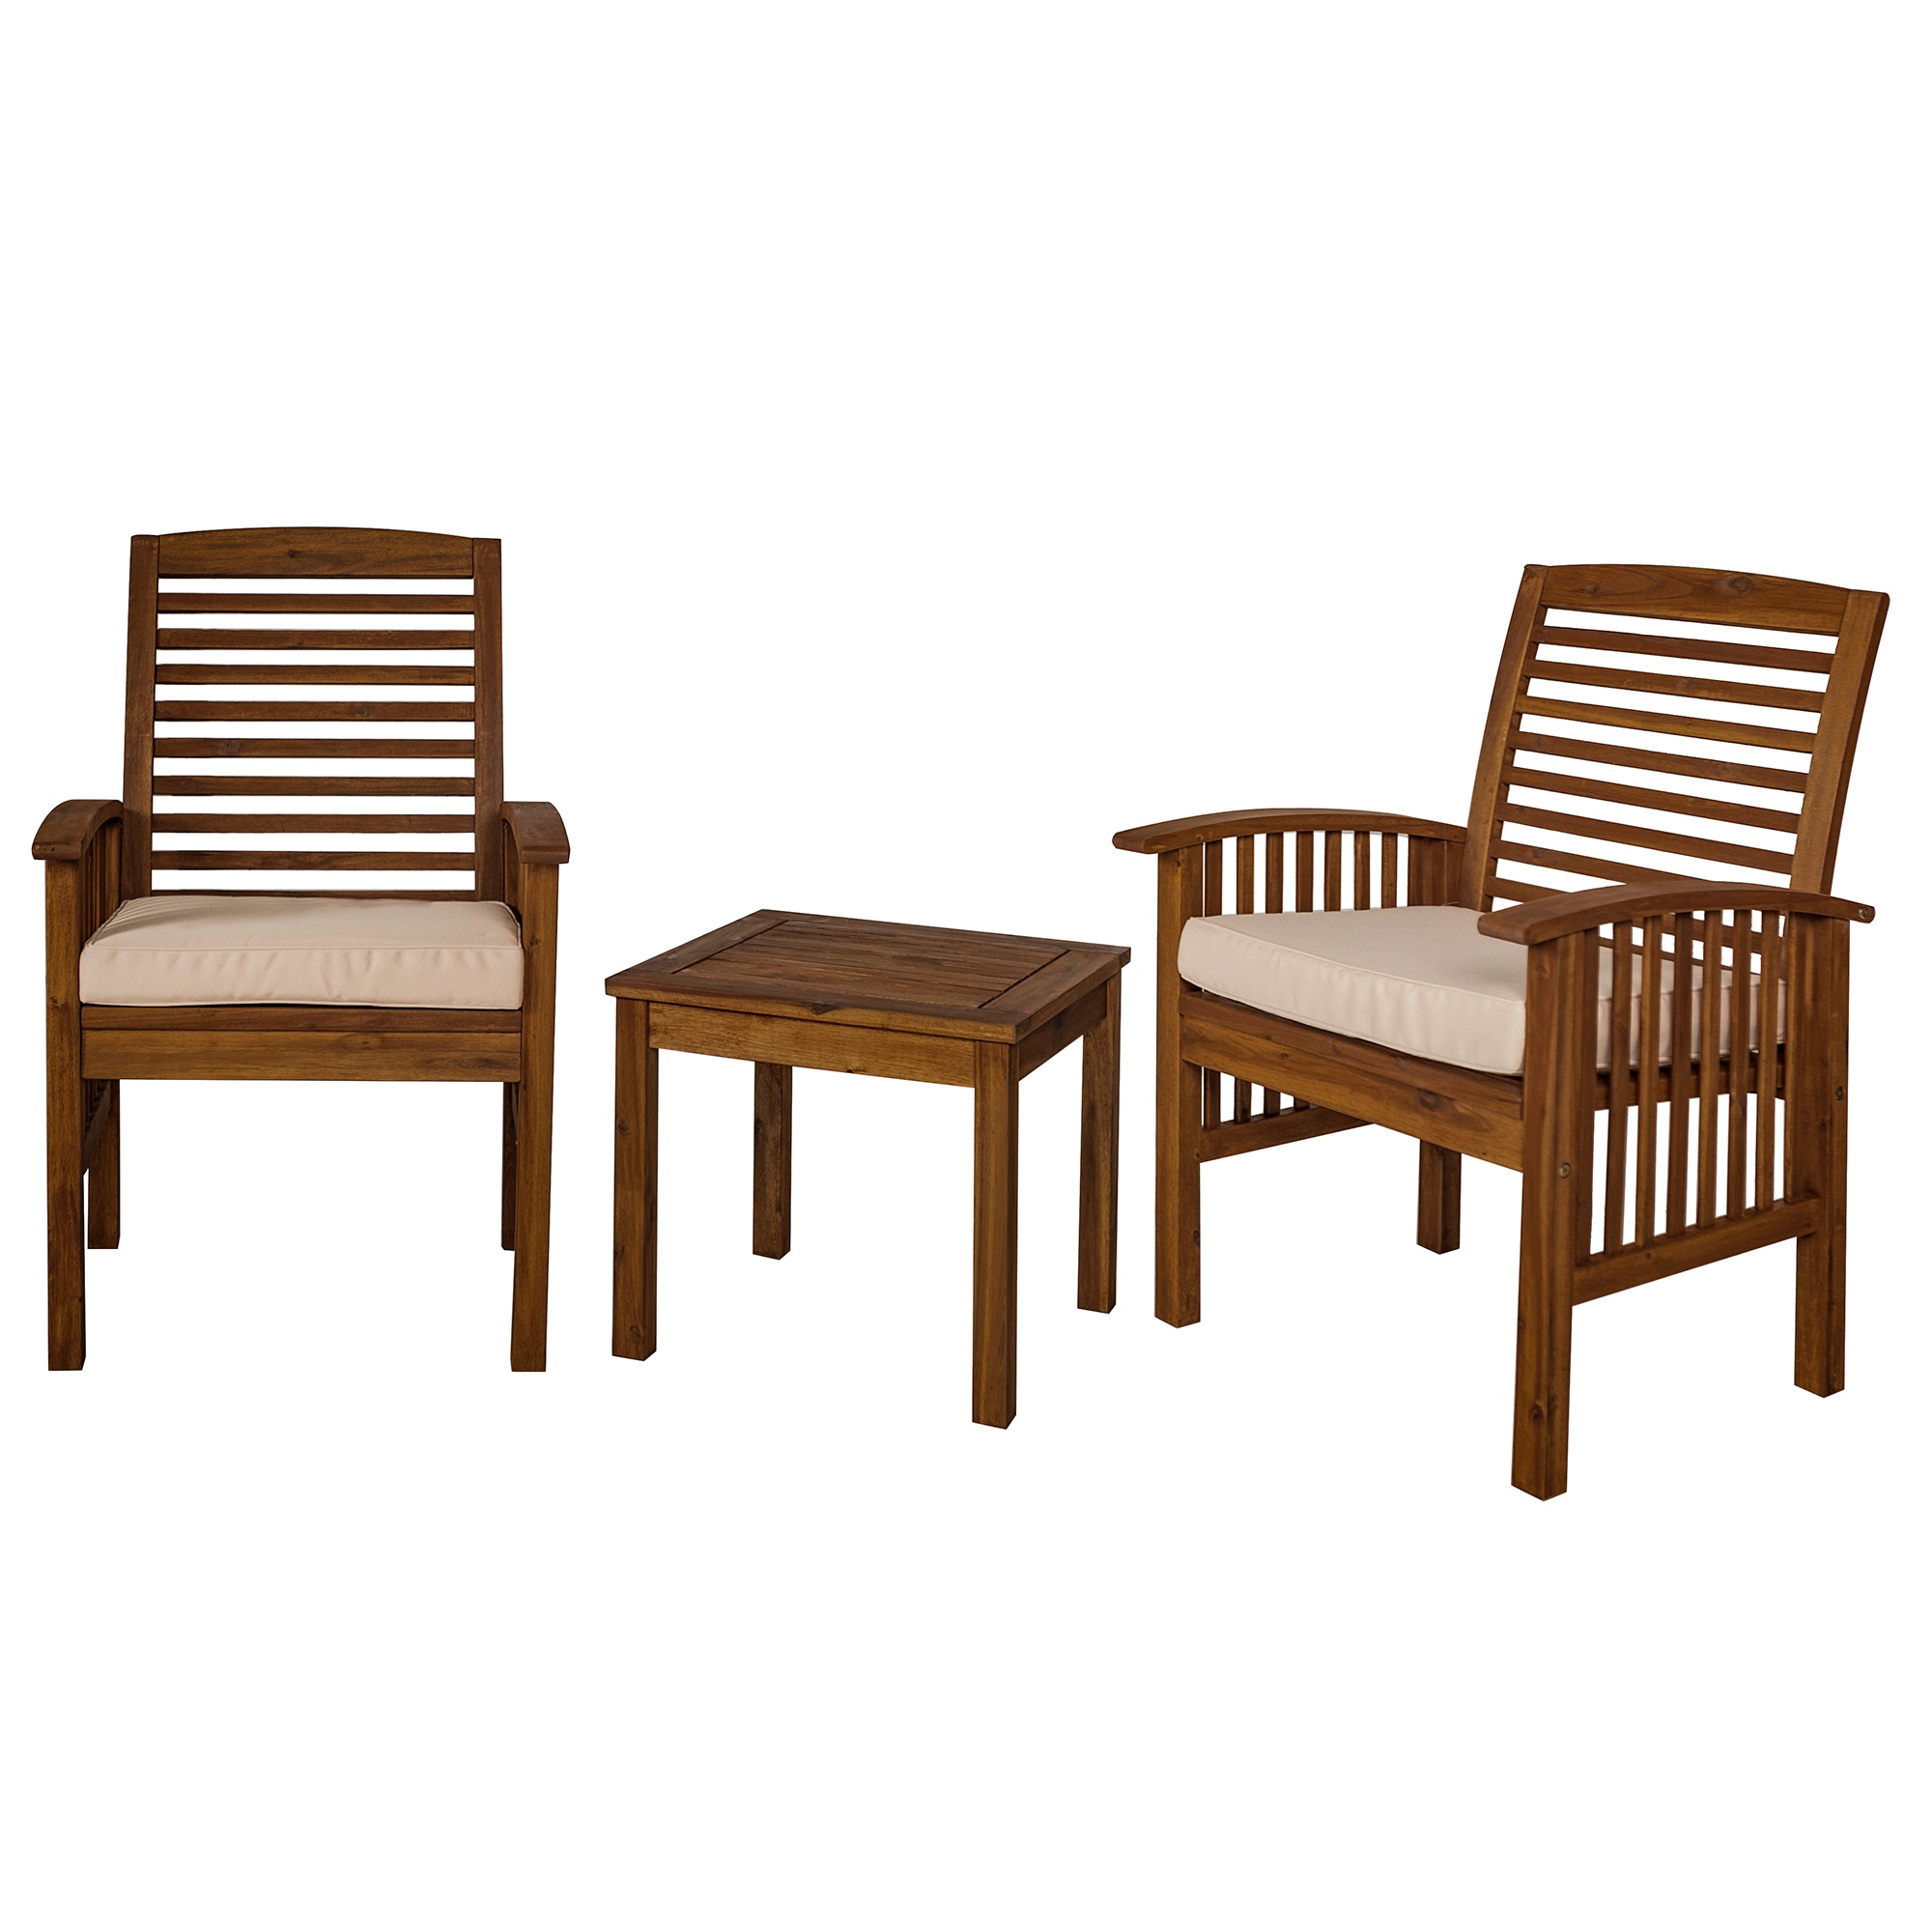 Ft Myers Outdoor Classic Acacia Wood Patio Chairs and Side Table WEDOWC3CGDB from Walter E.  sc 1 st  Walter E. Smithe & Outdoor Classic Acacia Wood Patio Chairs and Side Table WEDOWC3CGDB